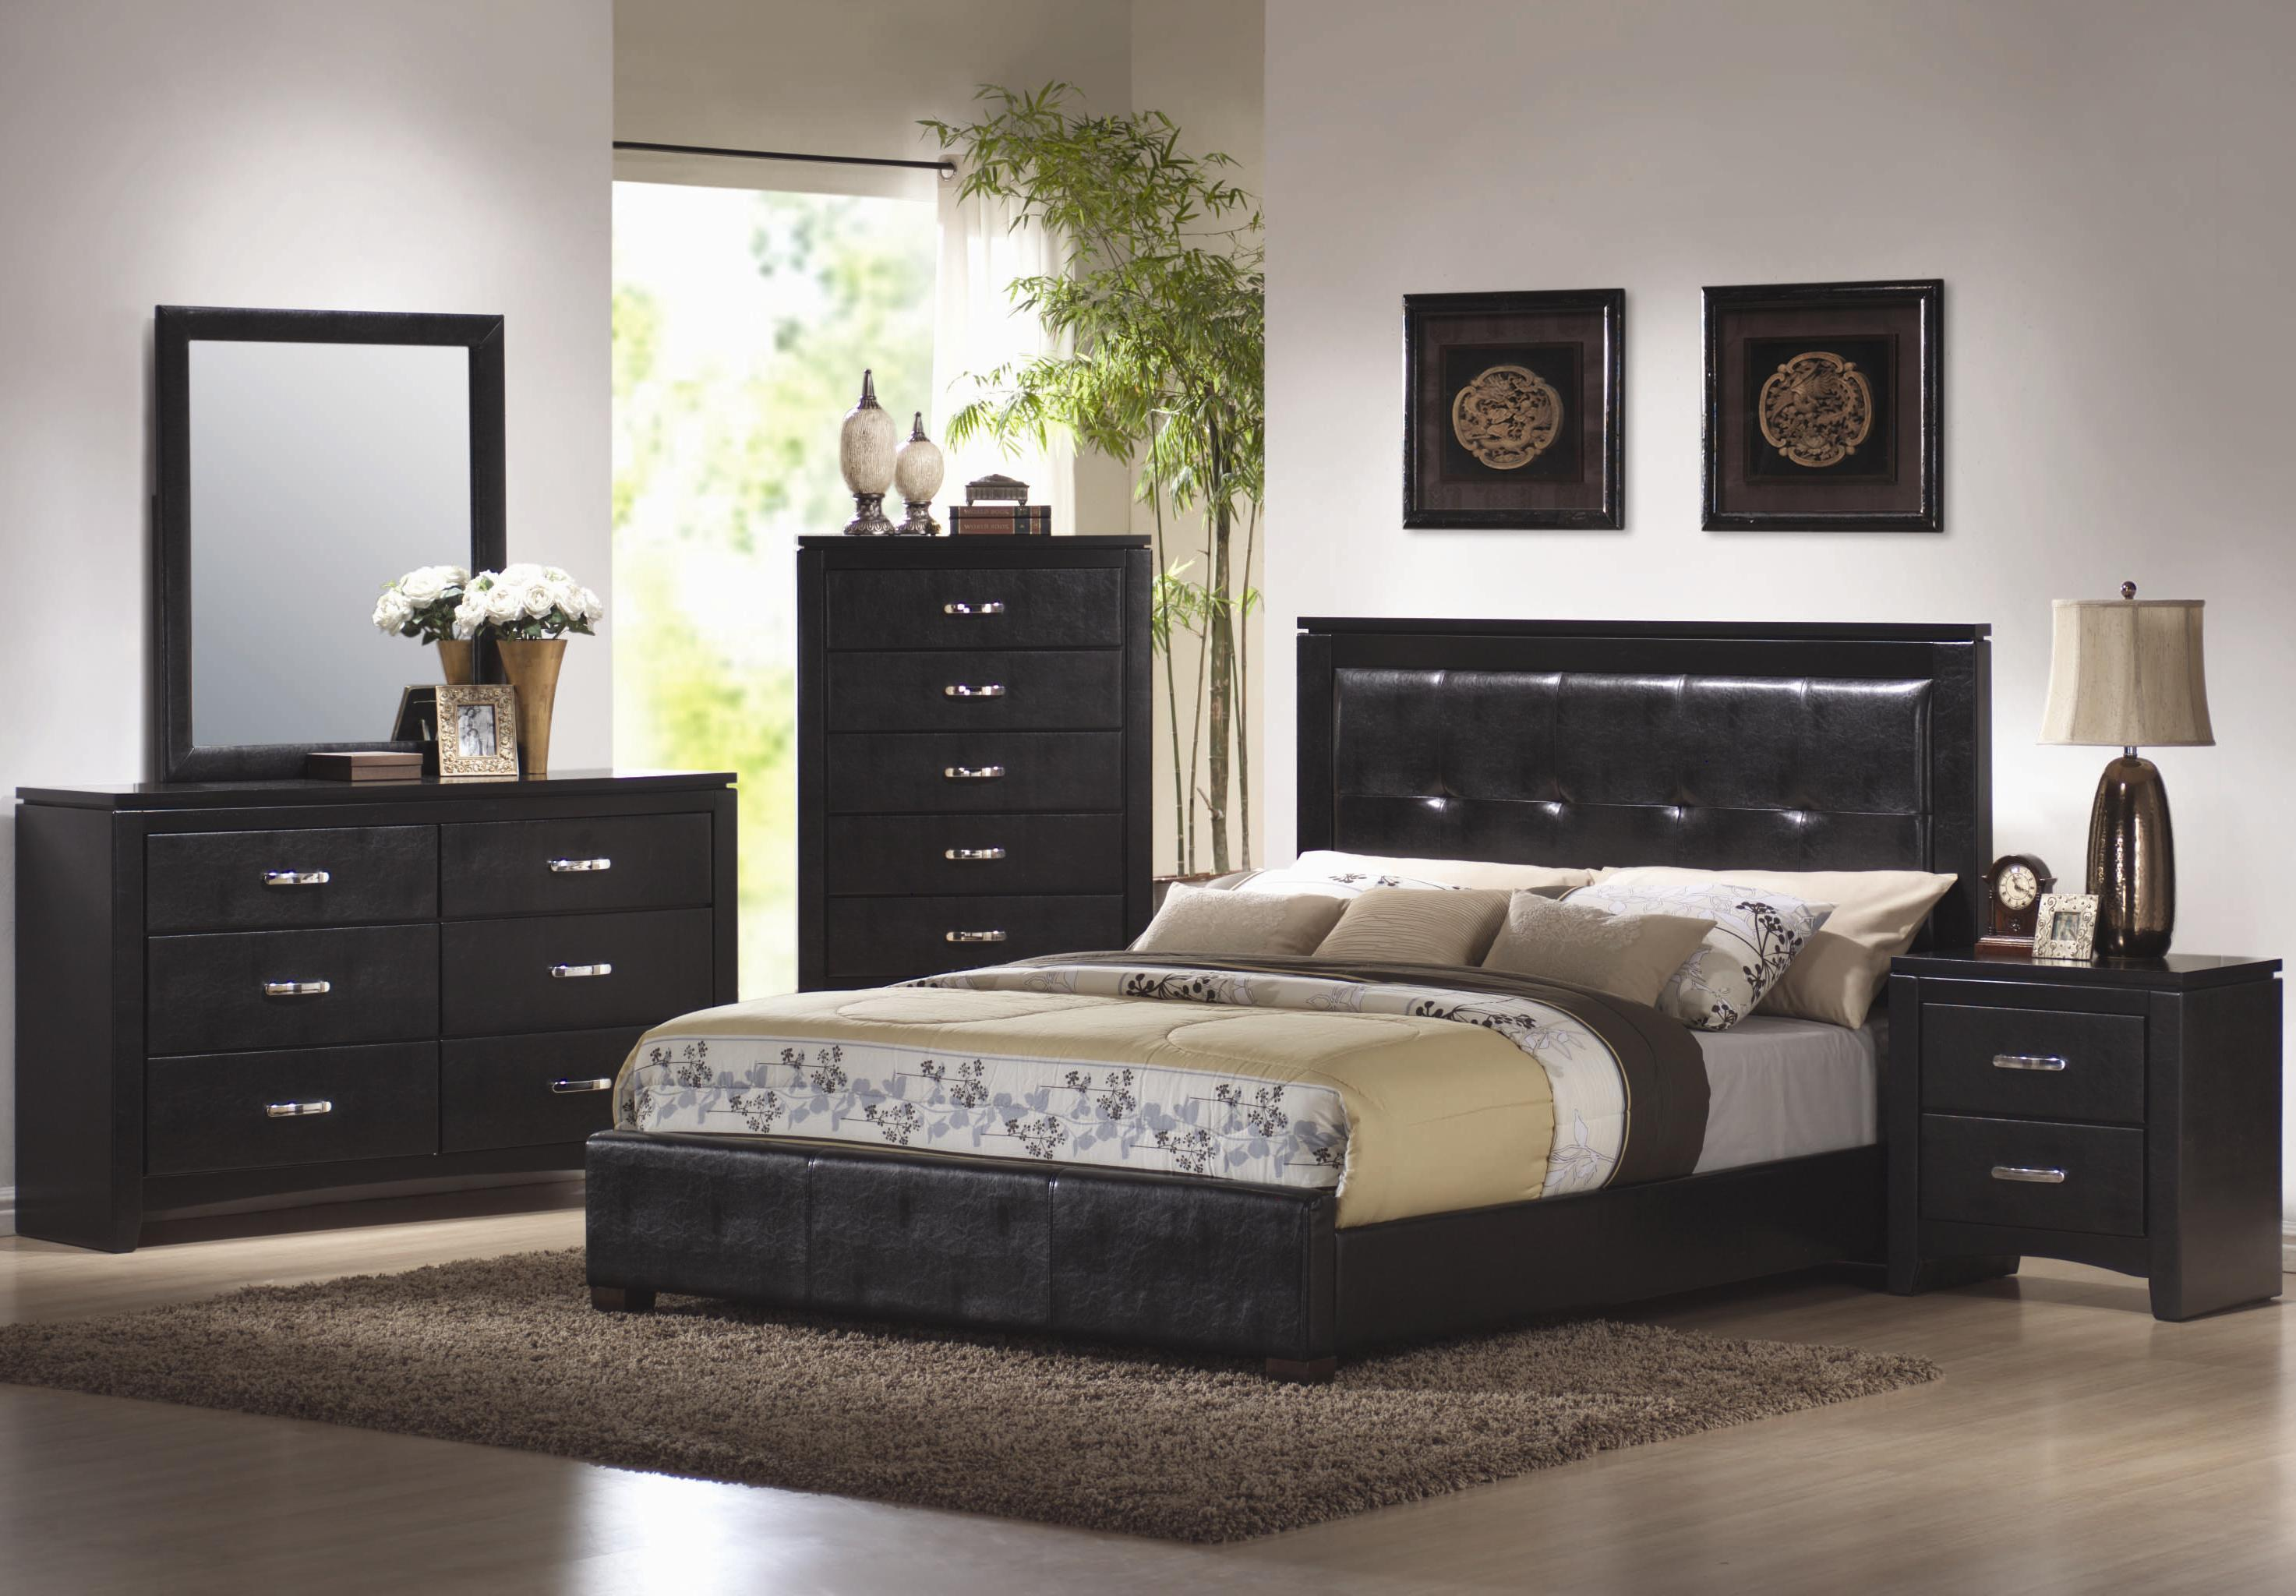 bedroom furniture black and white photo - 6